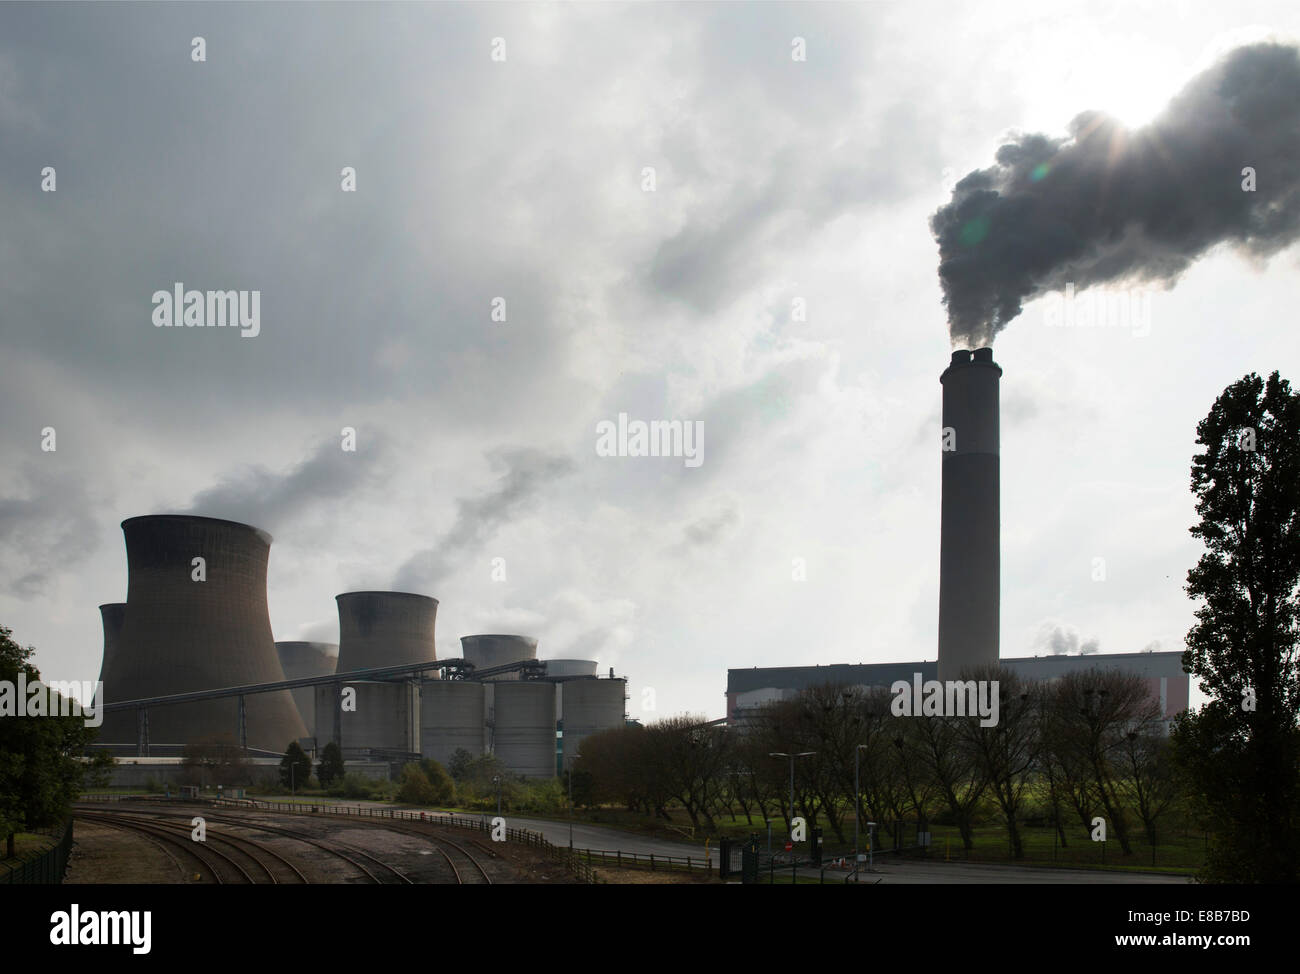 The Cottam power stations are a pair of power stations, located on the River Trent at Cottam near Retford in Nottinghamshire. - Stock Image